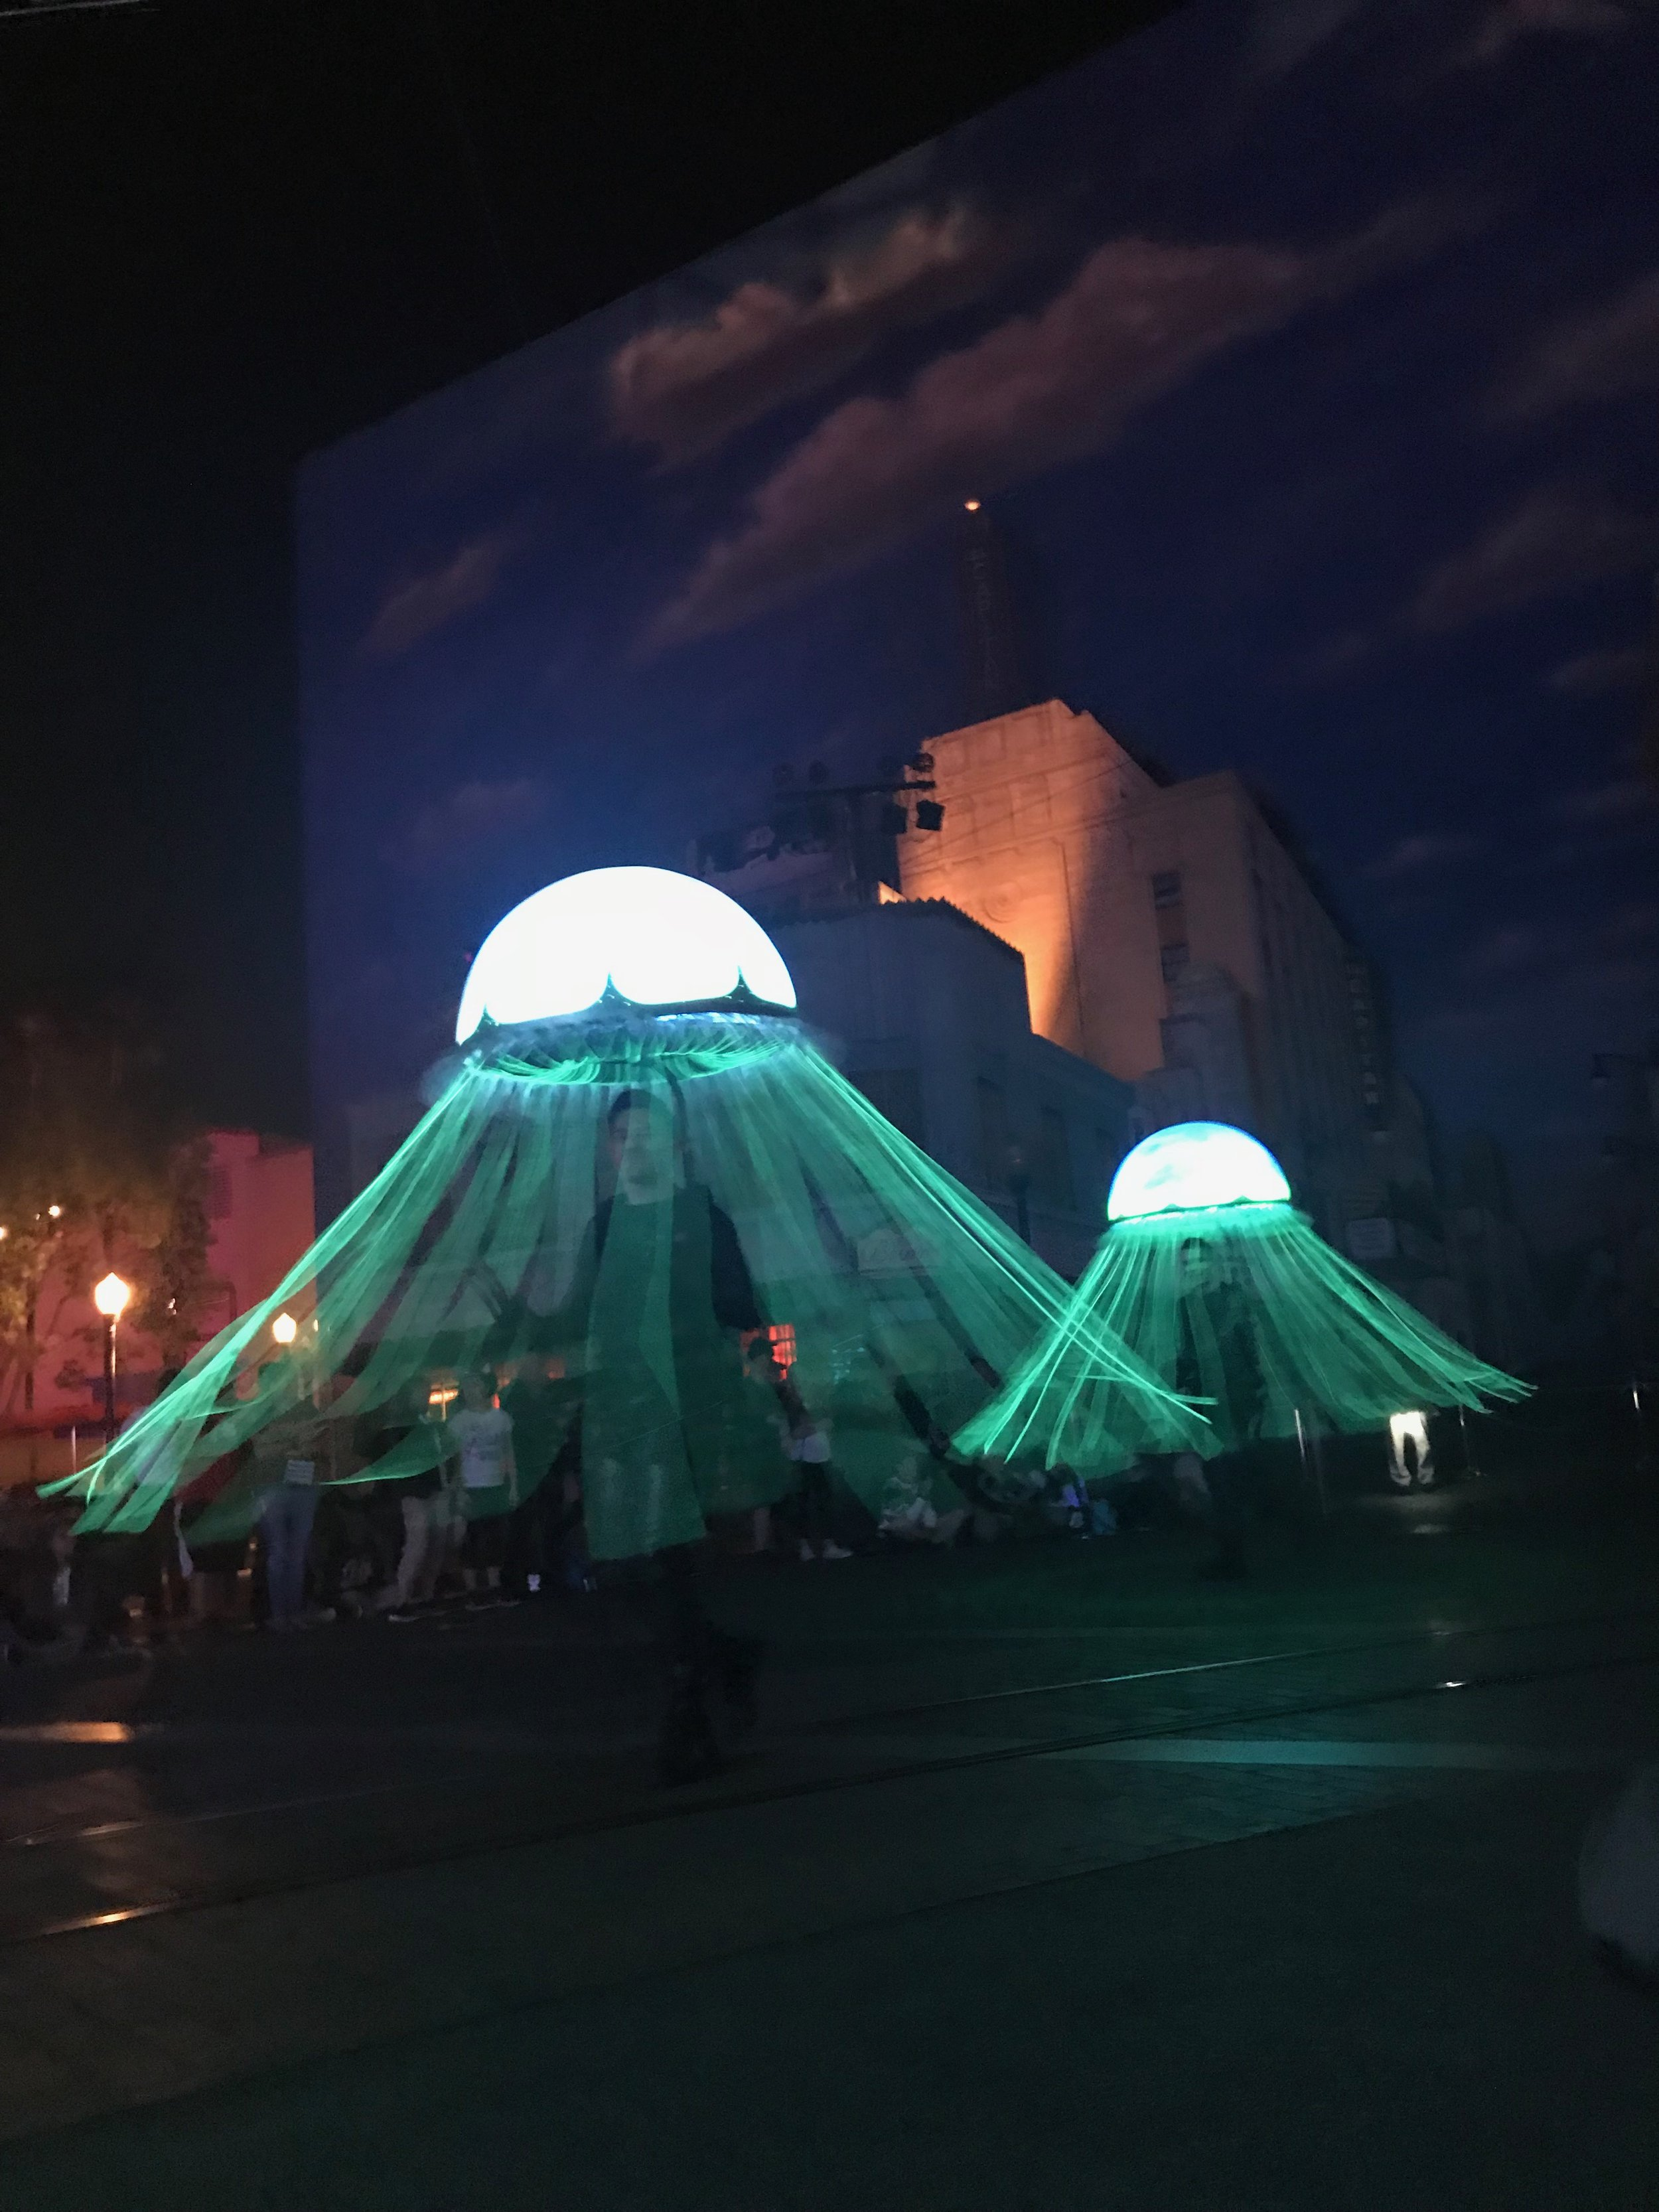 The spinning jellyfish umbrellas!